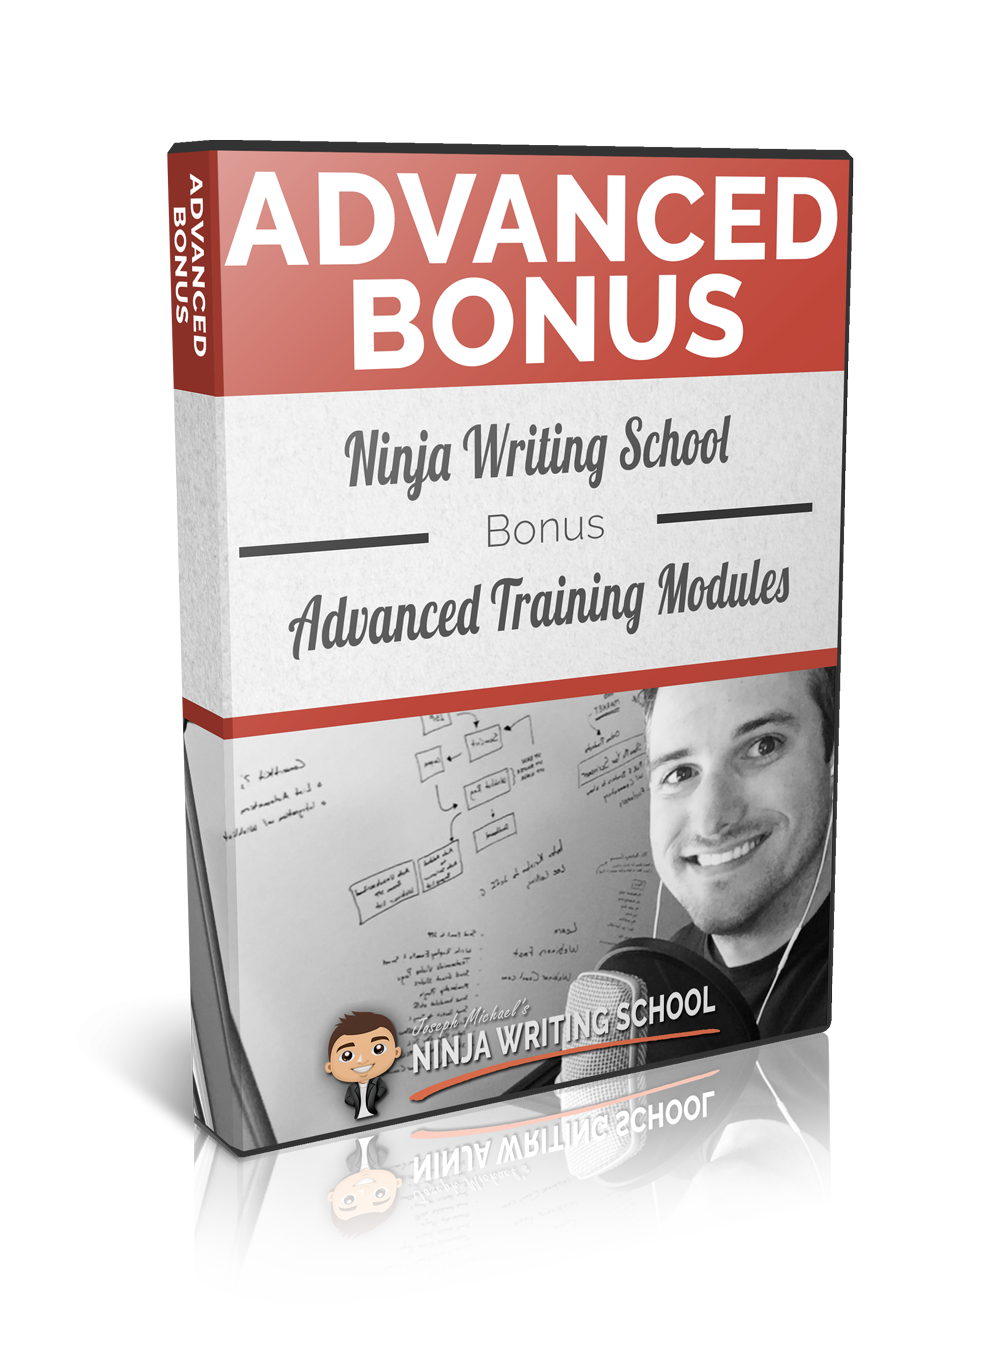 www.learn-scrivener-fast.com Scrivener Training & Coaching Course - Advanced Bonus 2 - Ninja Writing School